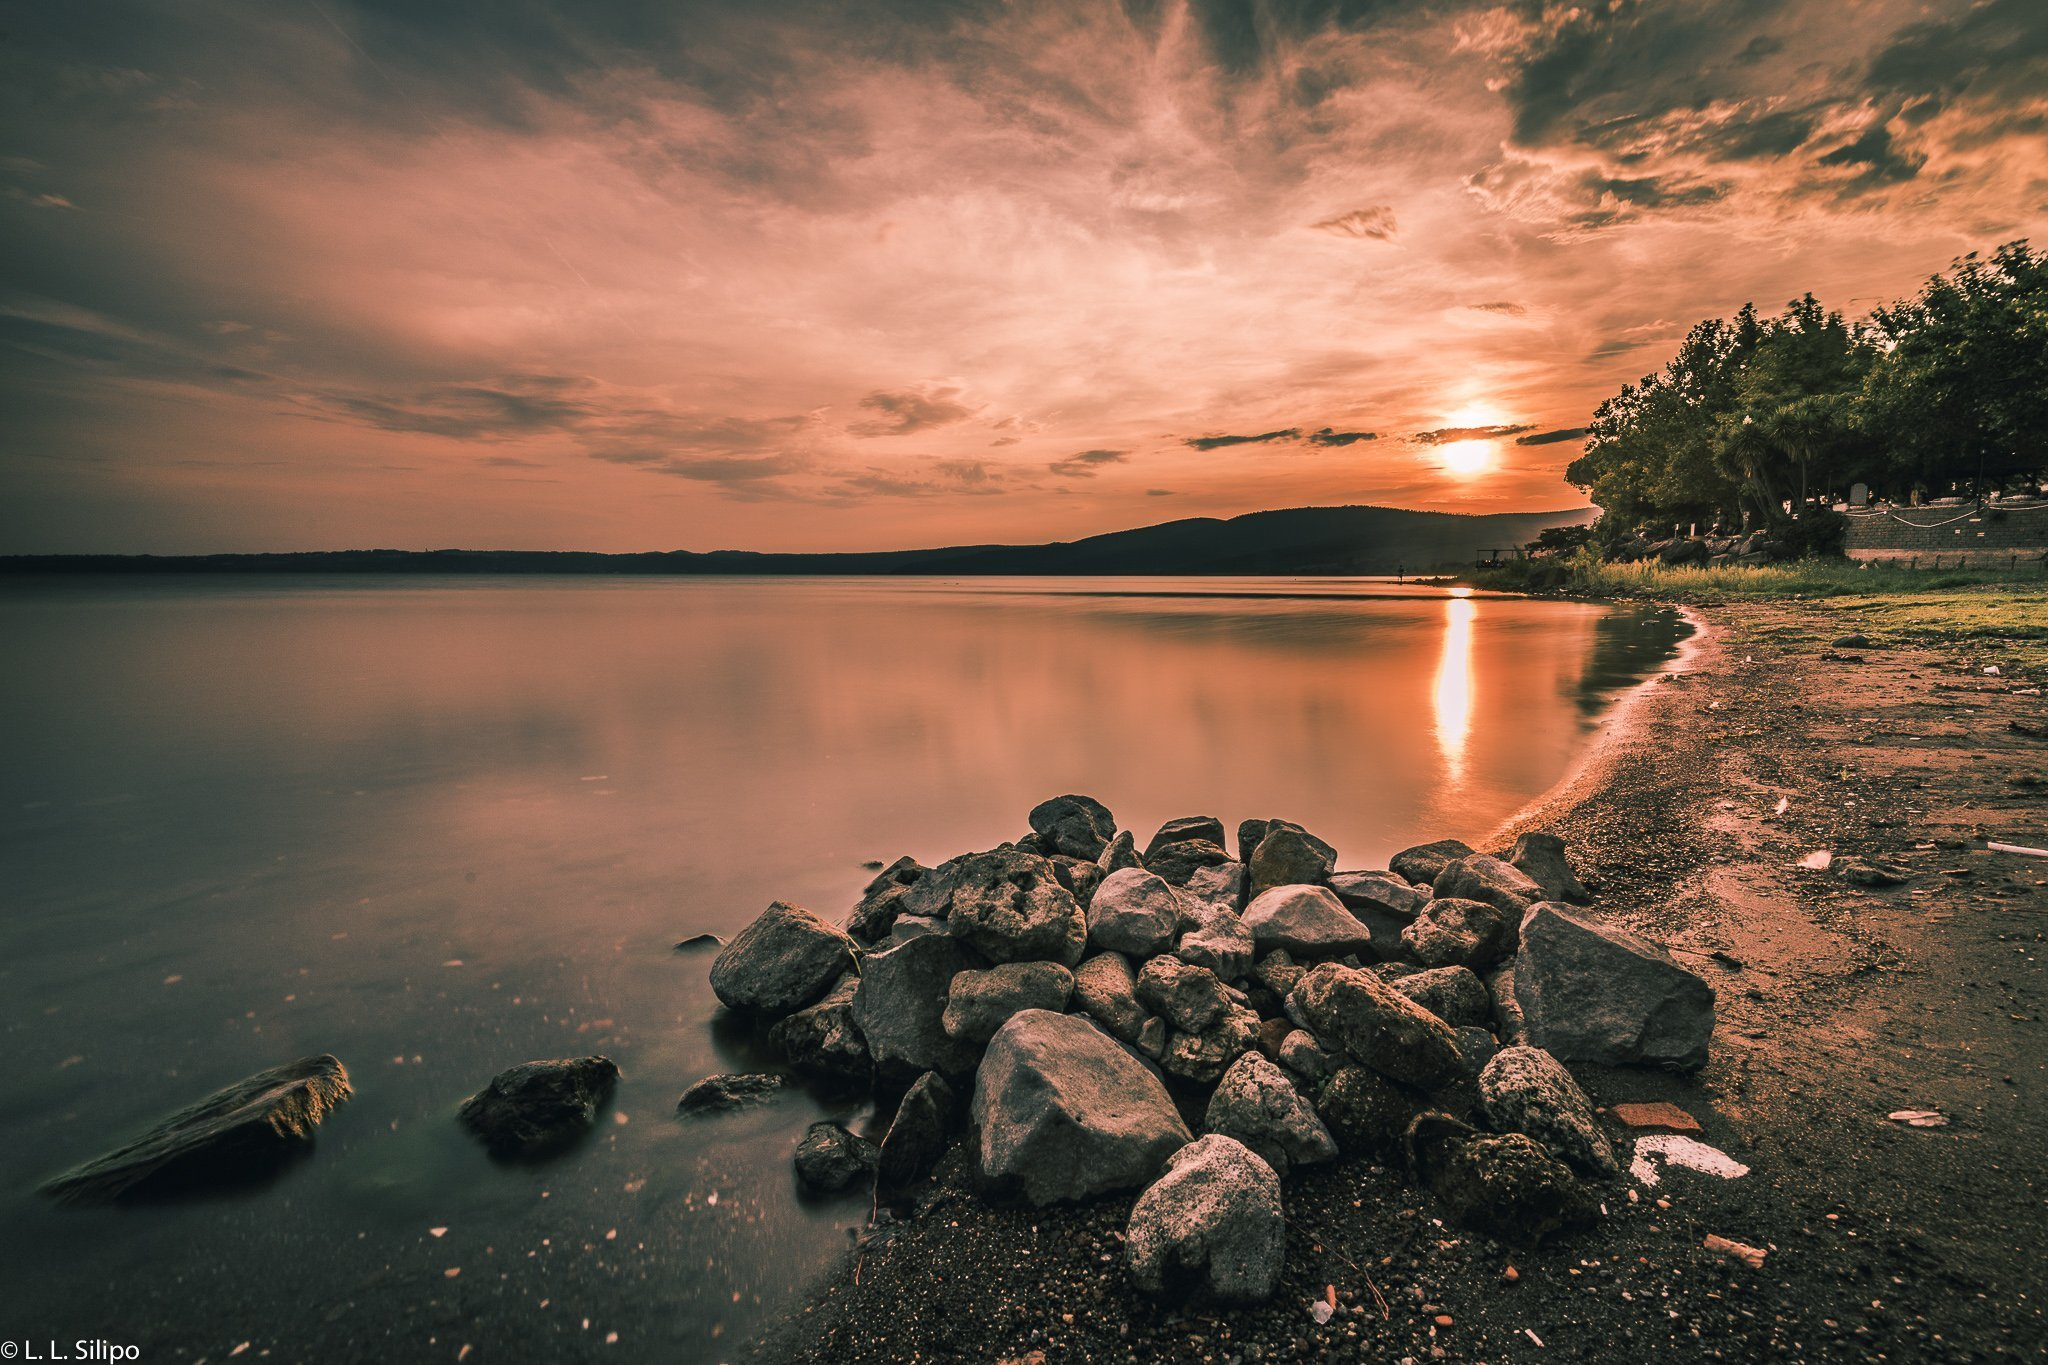 beach, beautiful, blue, bracciano, cloud, clouds, coast, dusk, evening, horizon, illustrative, italy, lake, landscape, nature, outdoor, reflection, rock, scenic, sky, stone, summer, sun, sunlight, sunset, travel, vacation, water, wilderness